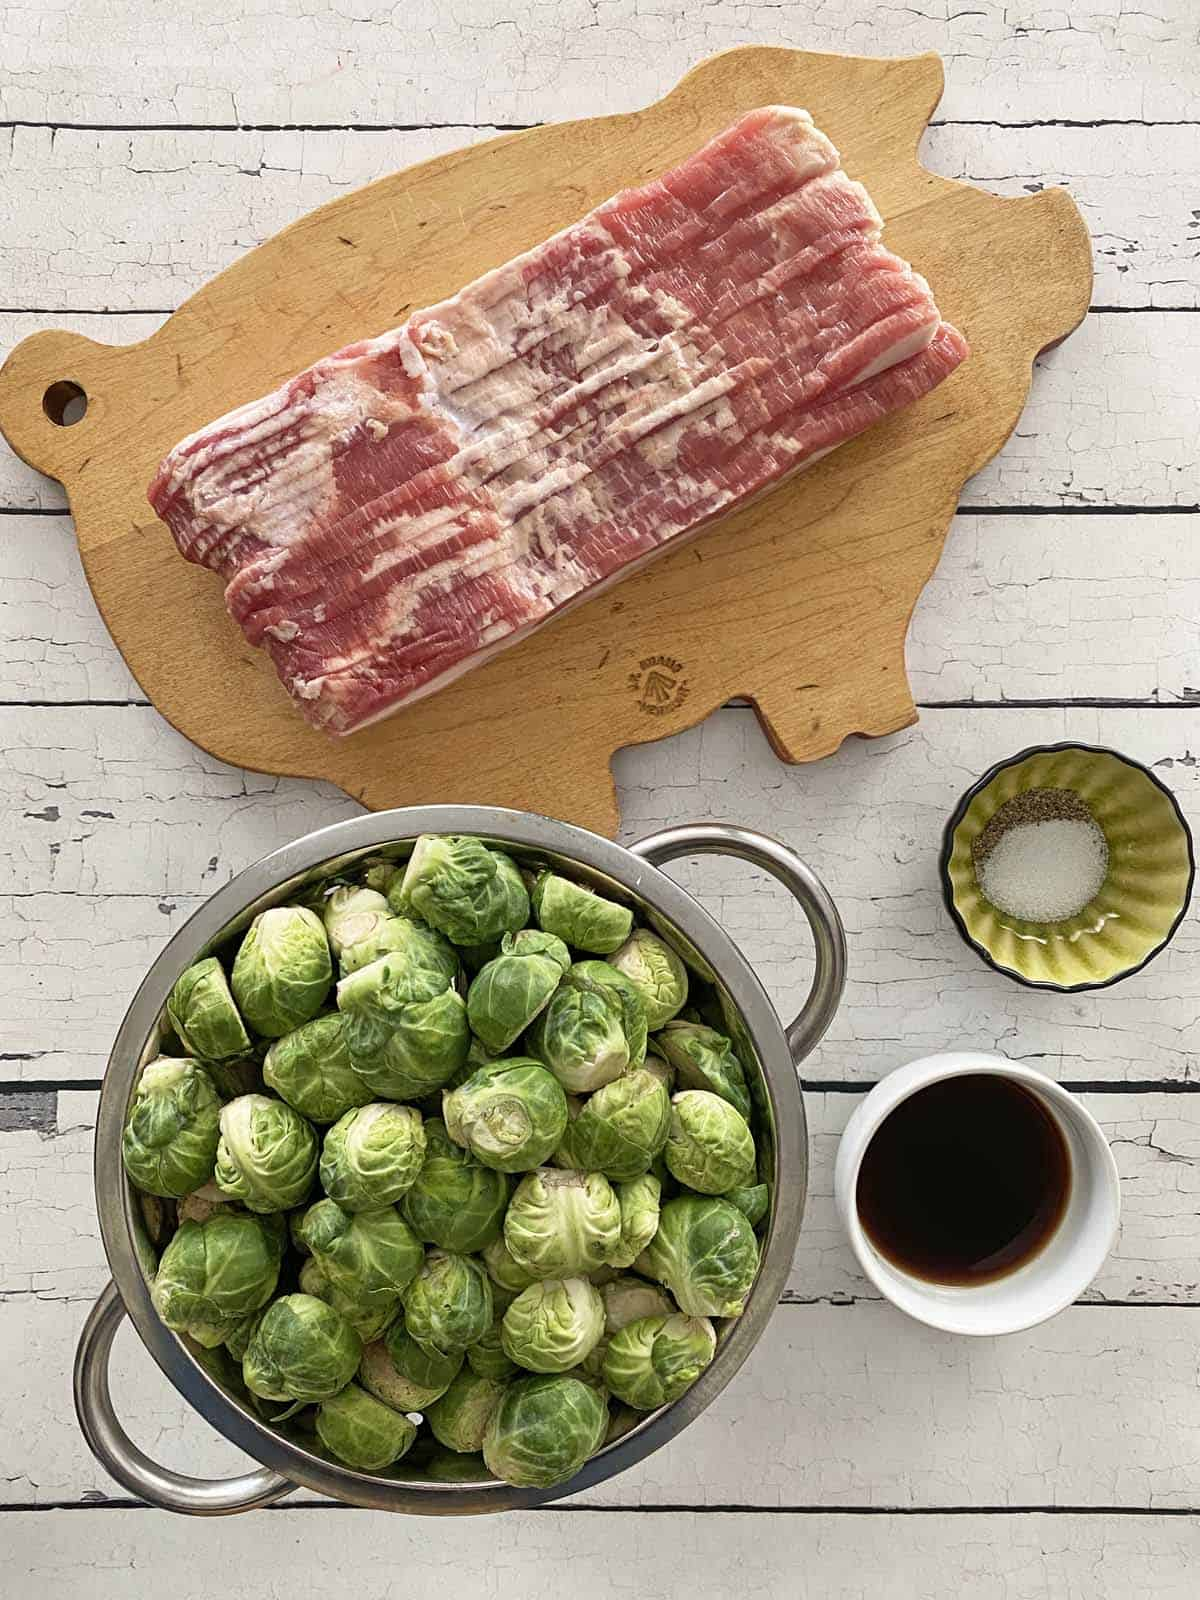 A wood cutting board with a pound of bacon, a collander full of Brussels sprouts, a dish of balsamic vinegar and a dish of salt and pepper